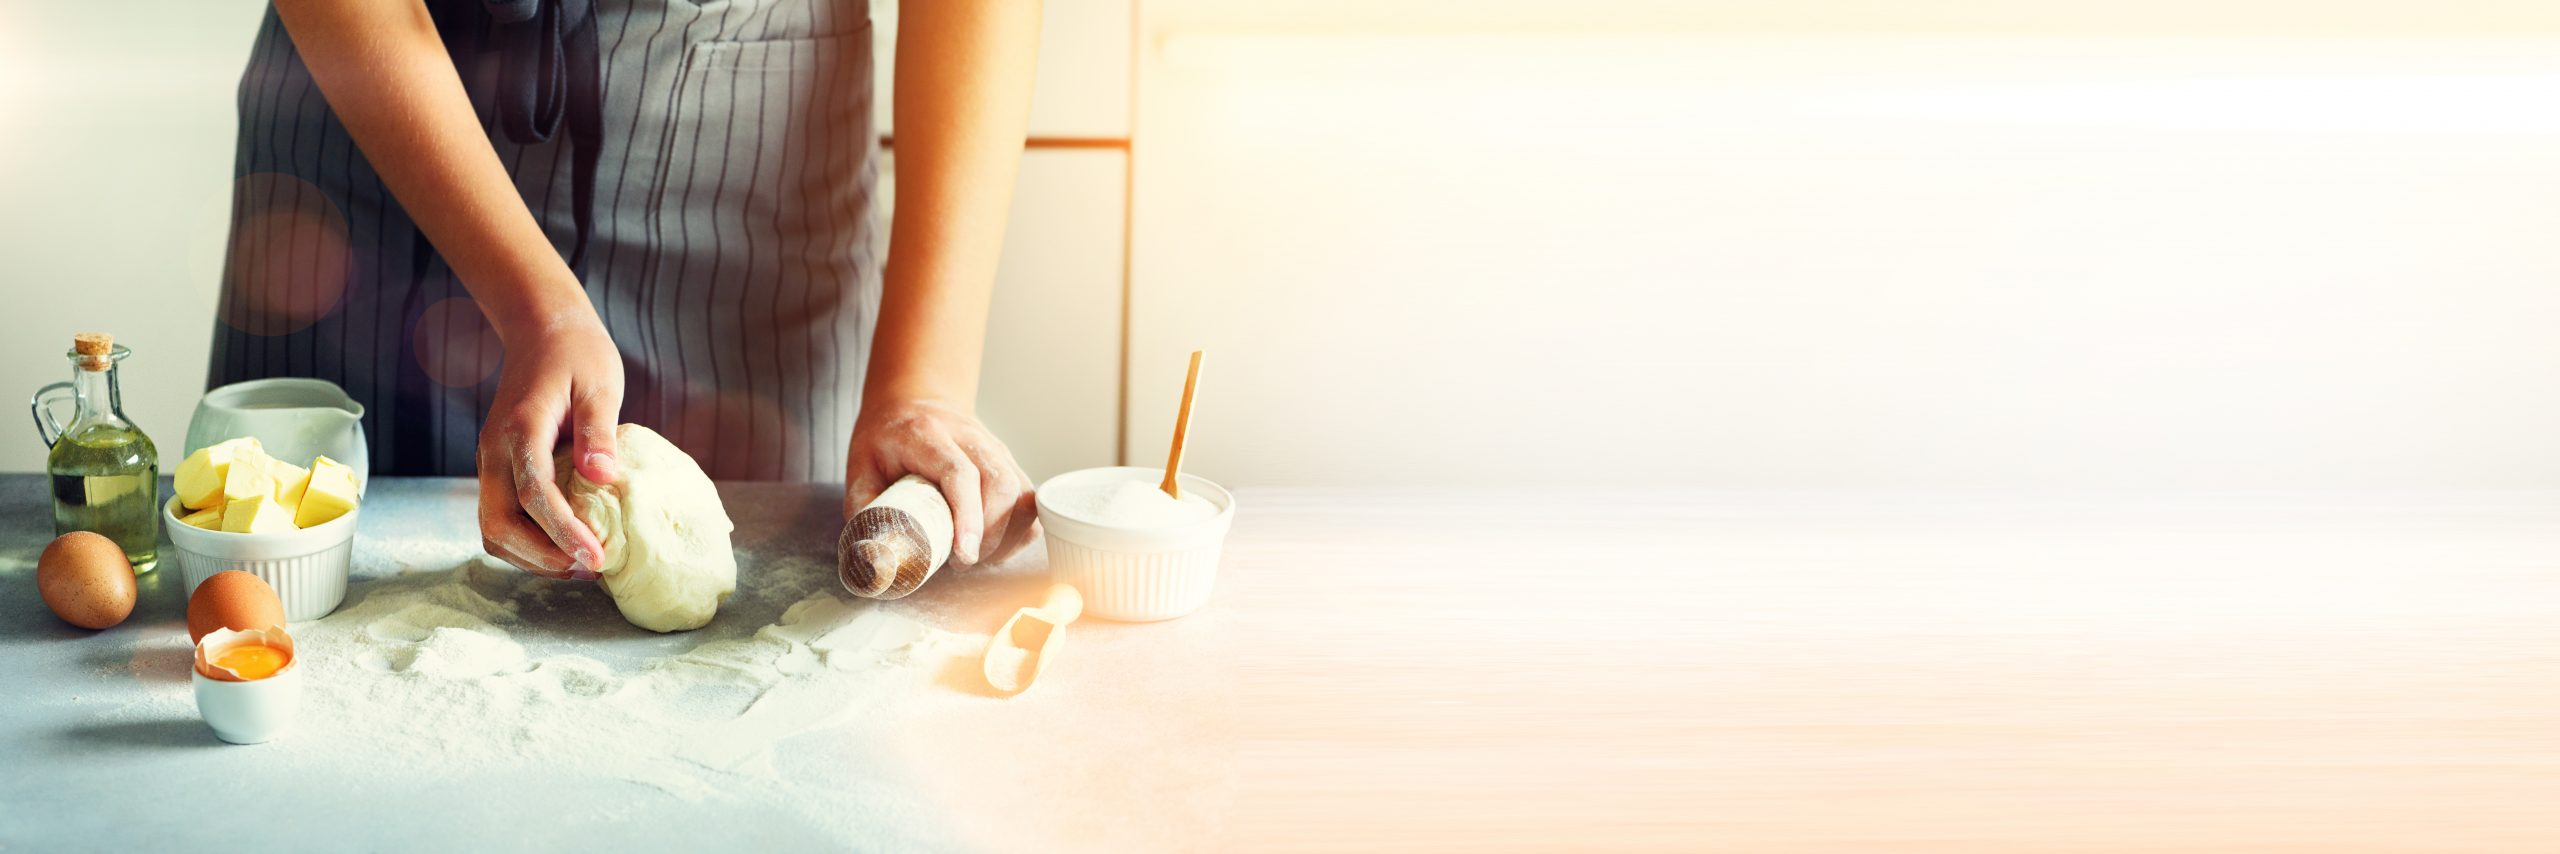 Female hands kneading dough, baking background. Cooking ingredients – eggs, flour, sugar, butter, milk, rolling pin on white style kitchen. Copy space. Banner